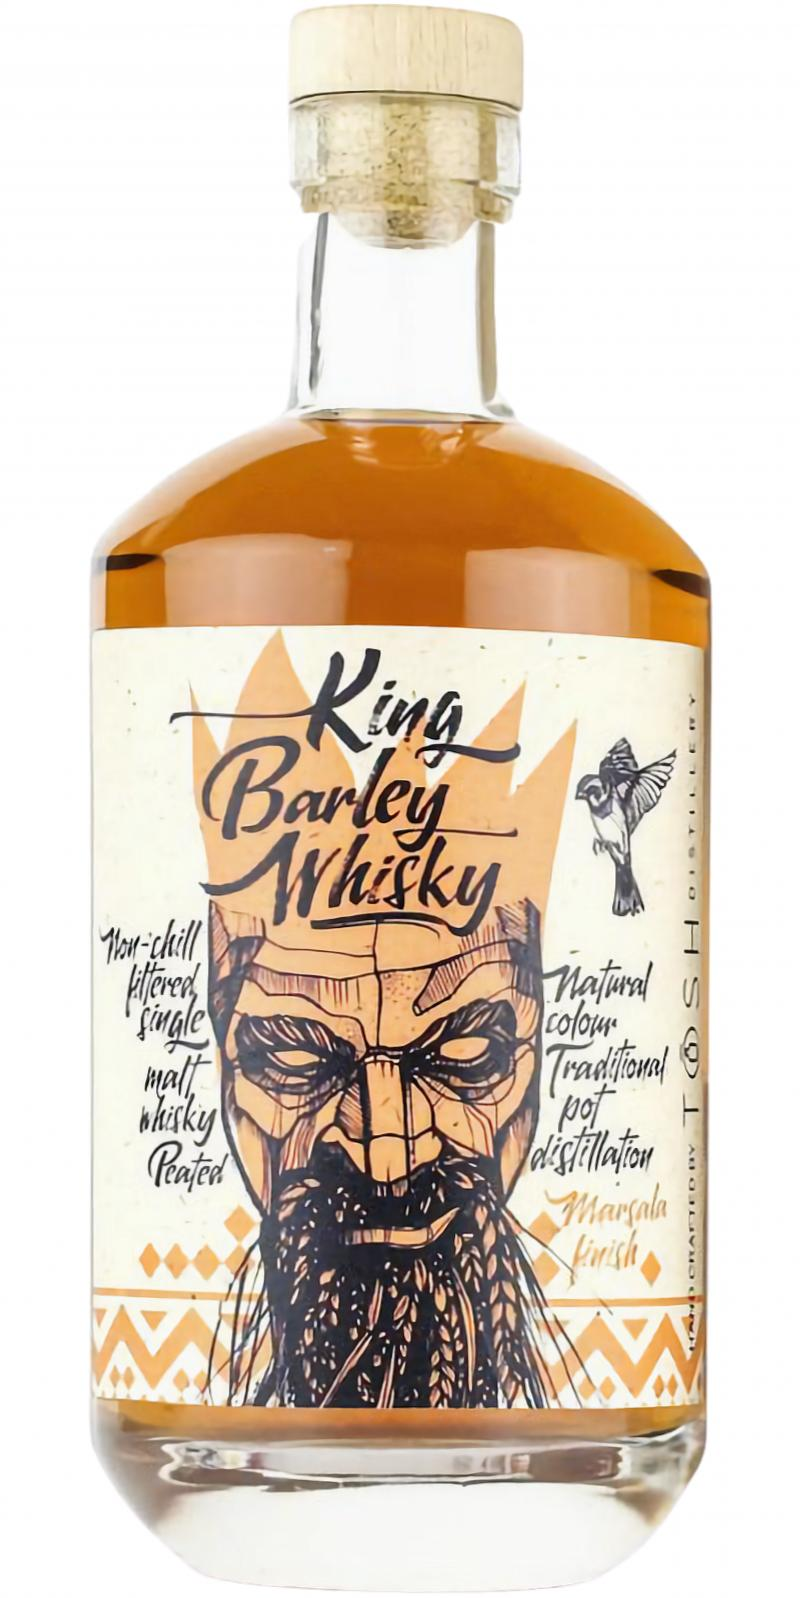 King Barley Whisky